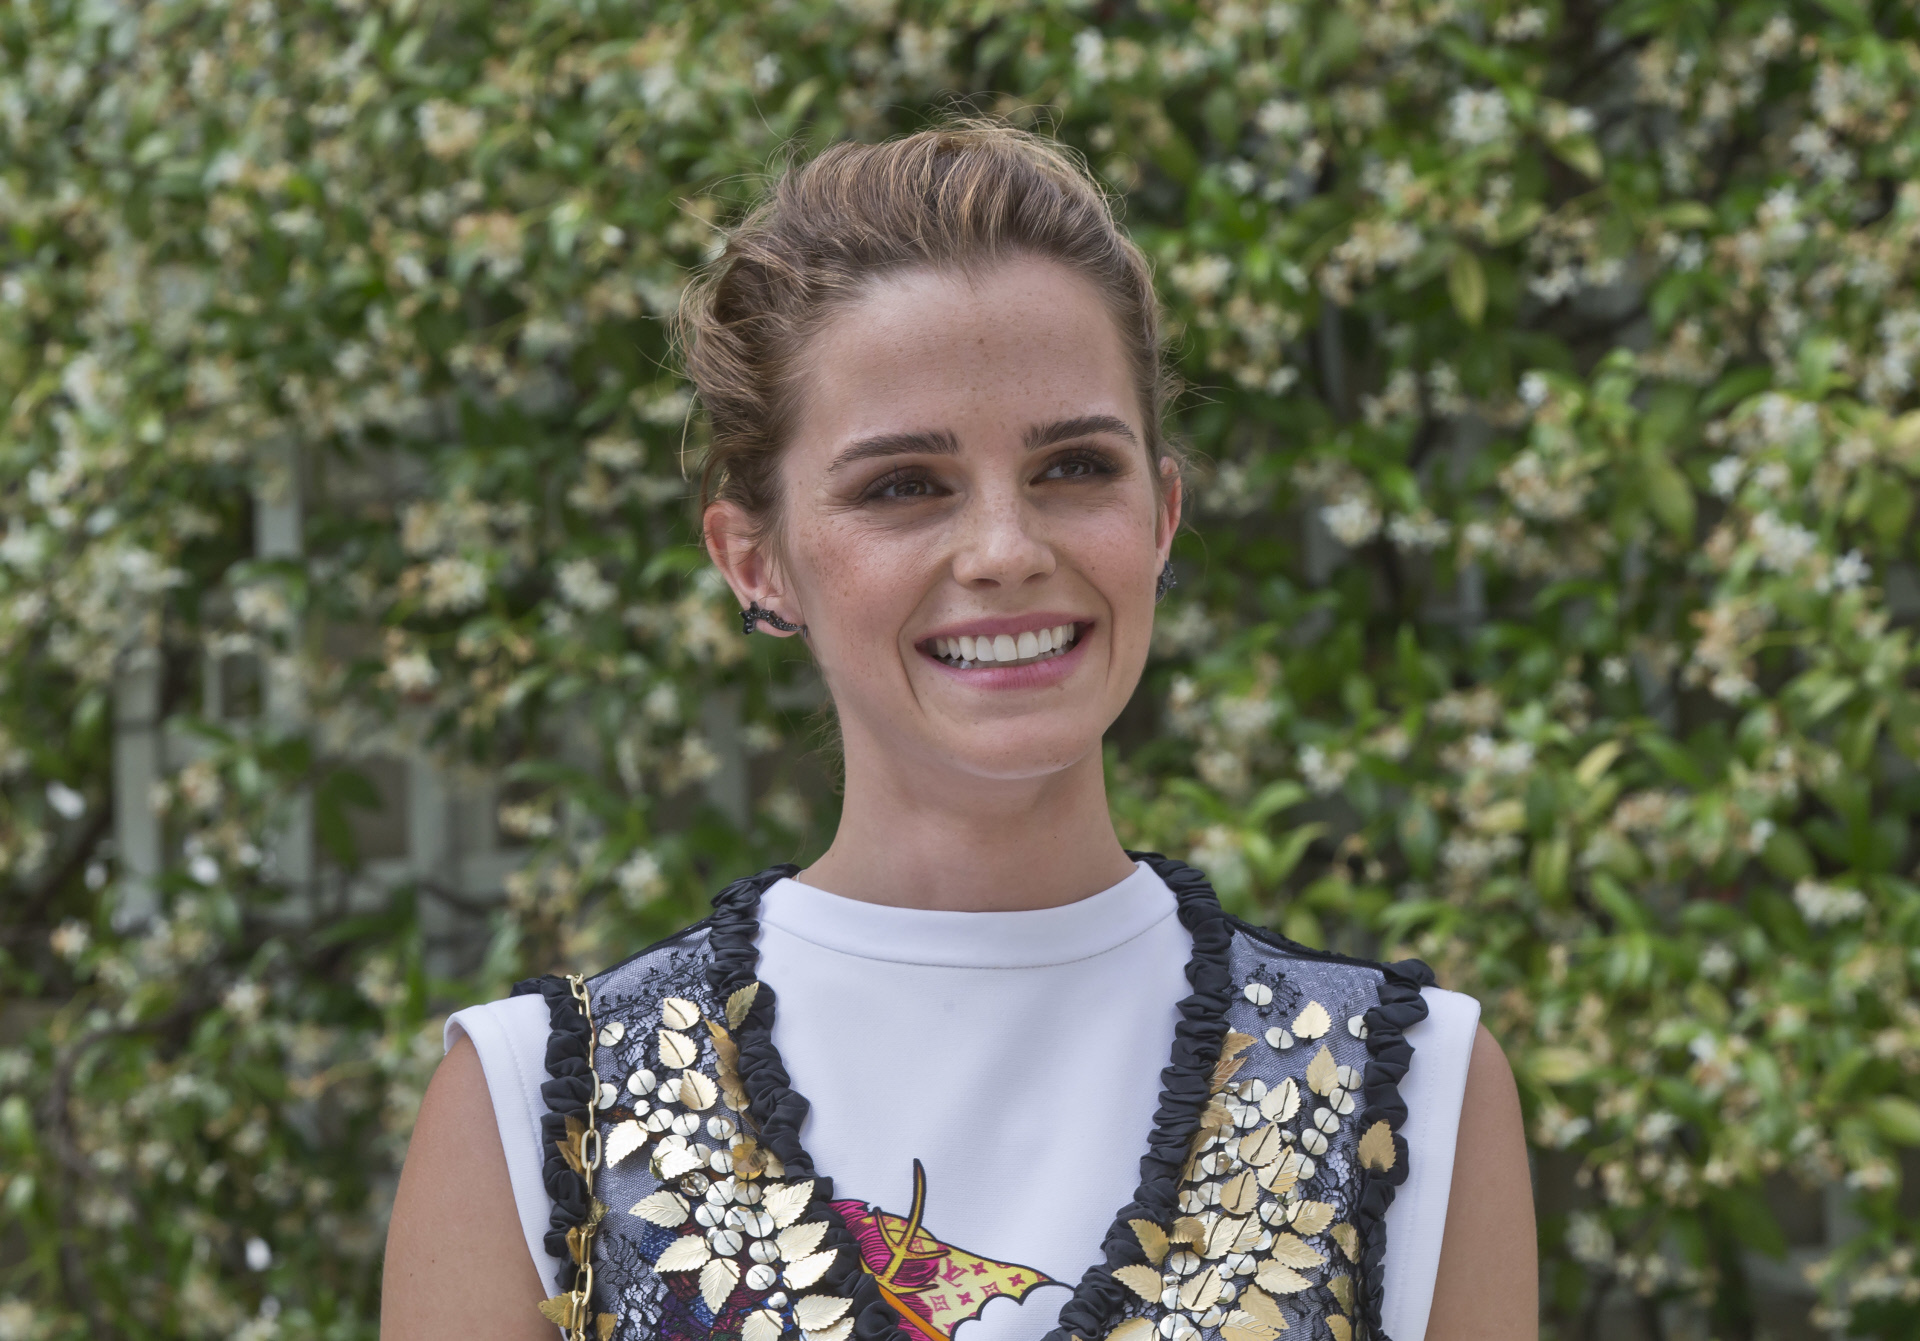 Emma Watson en la fashion week de Paris el pasado junio.